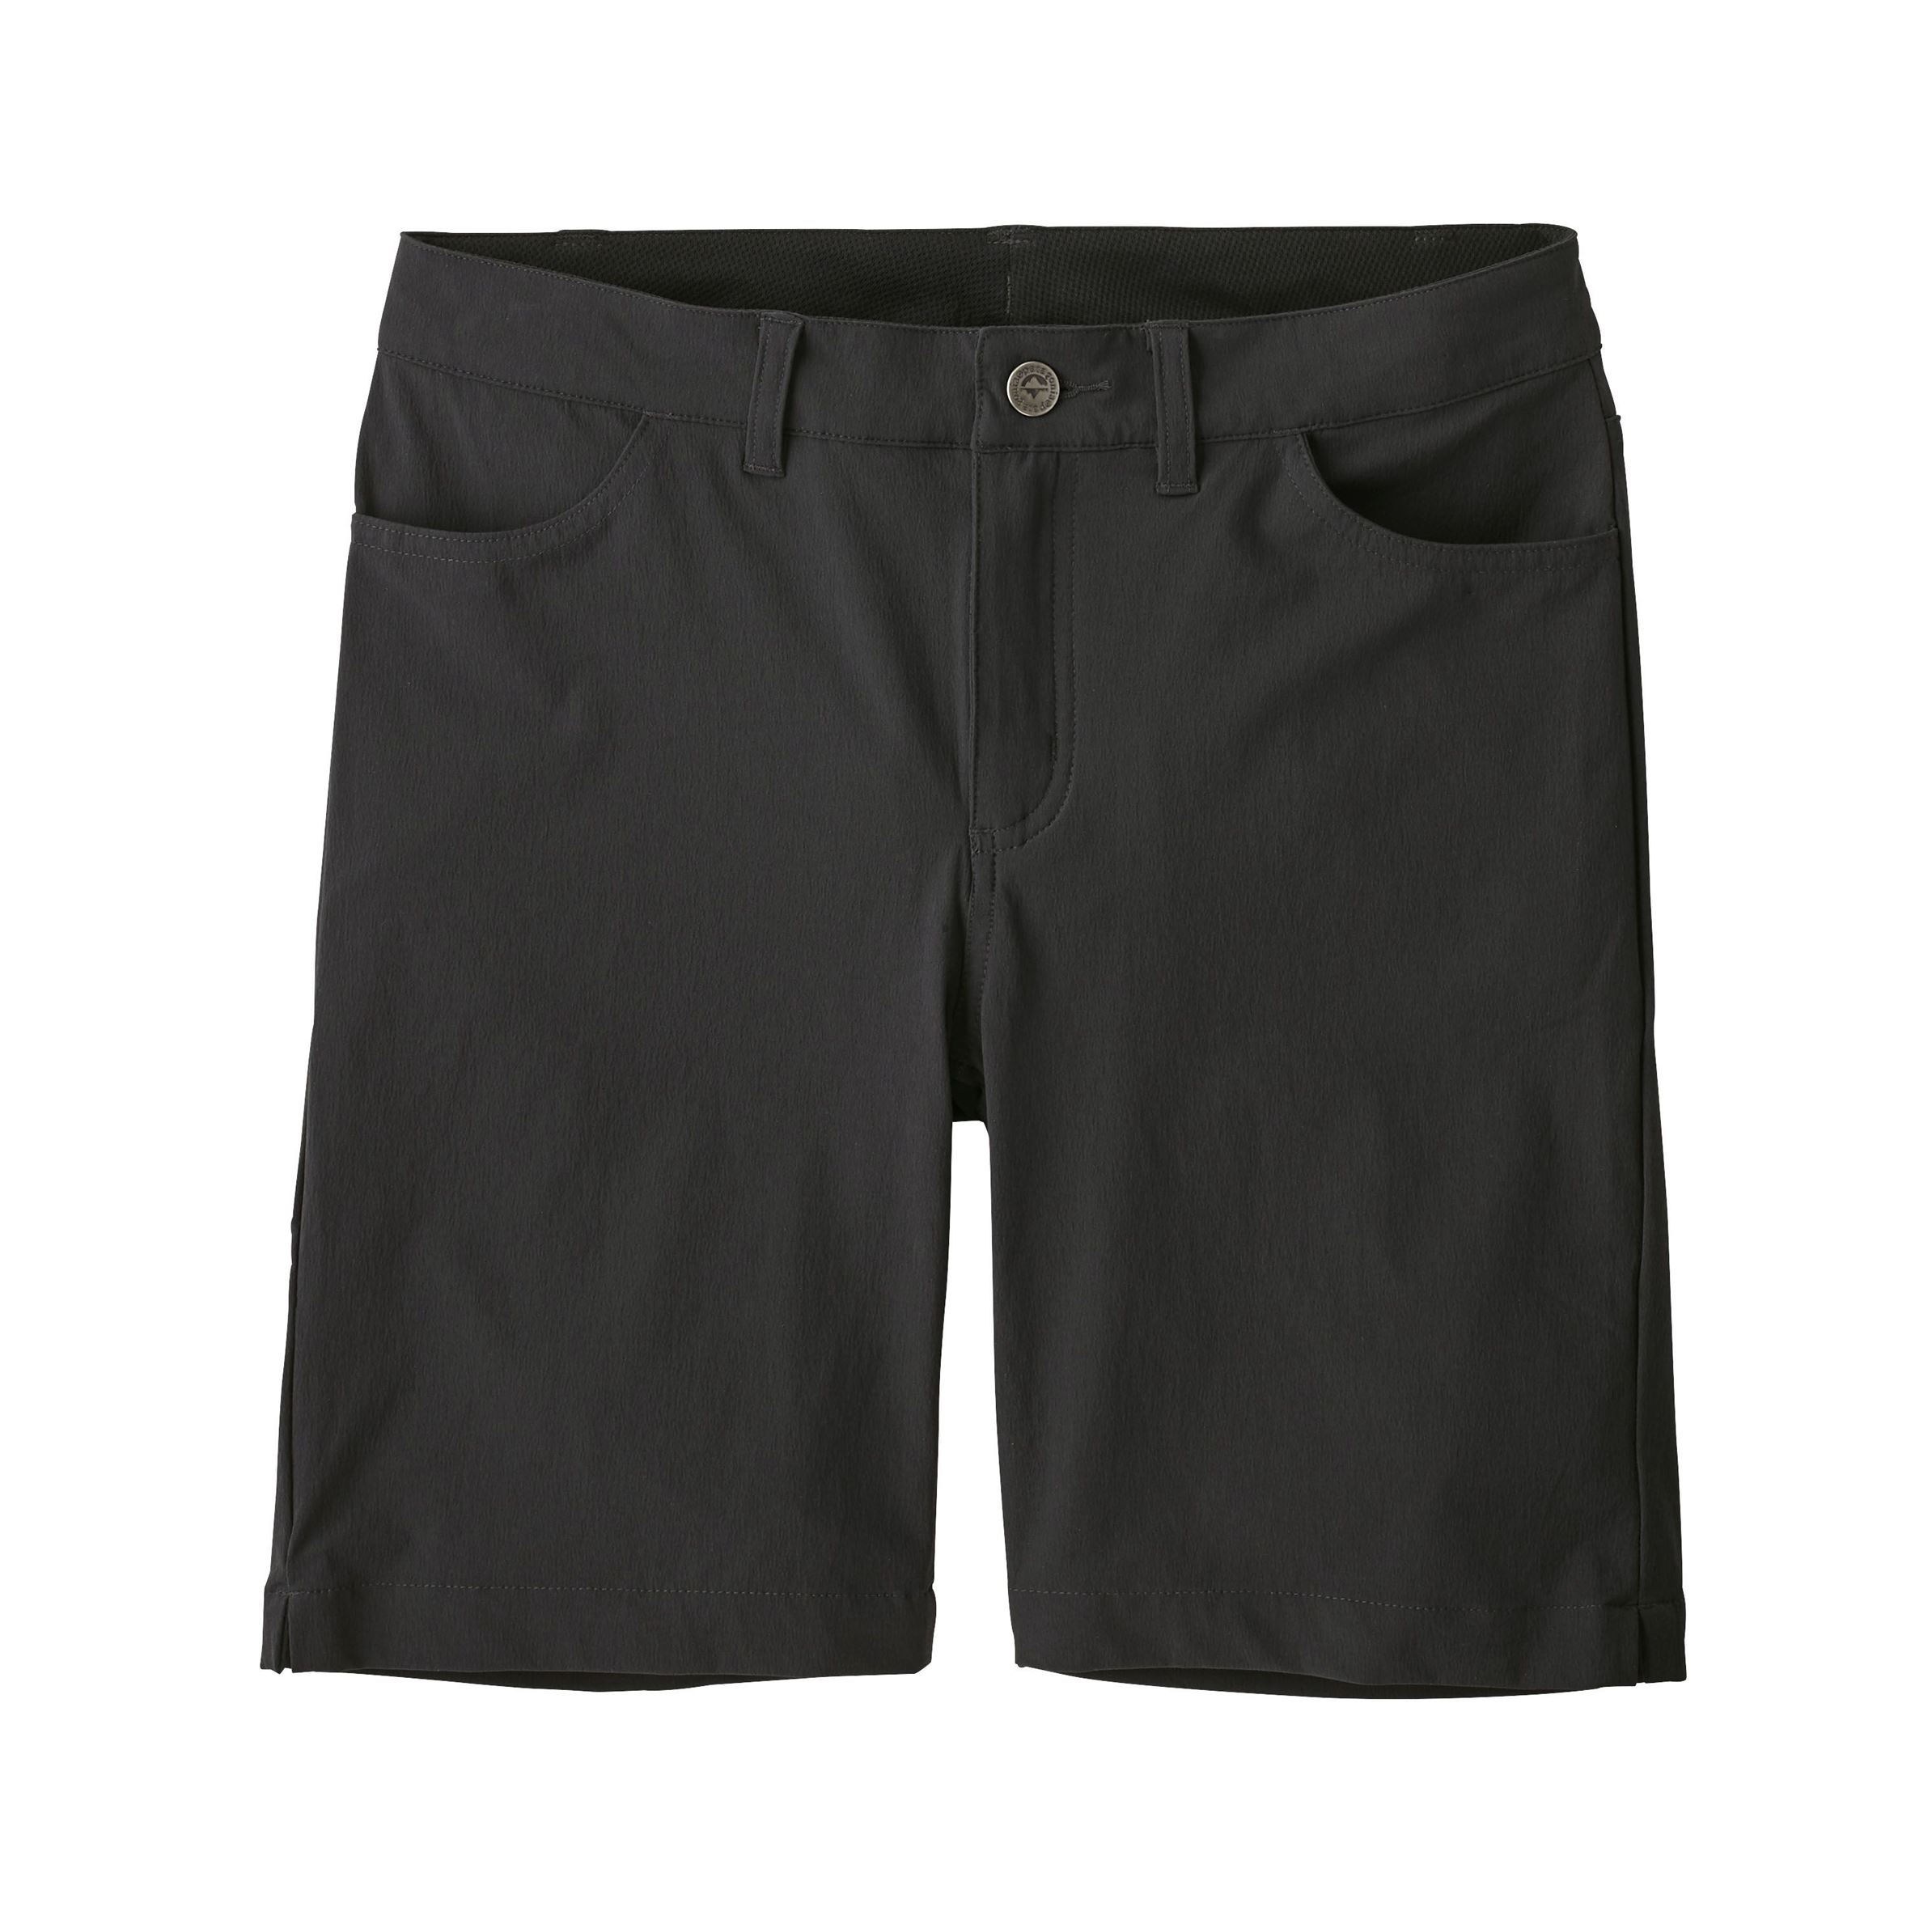 Skyline Traveler Shorts - Women's